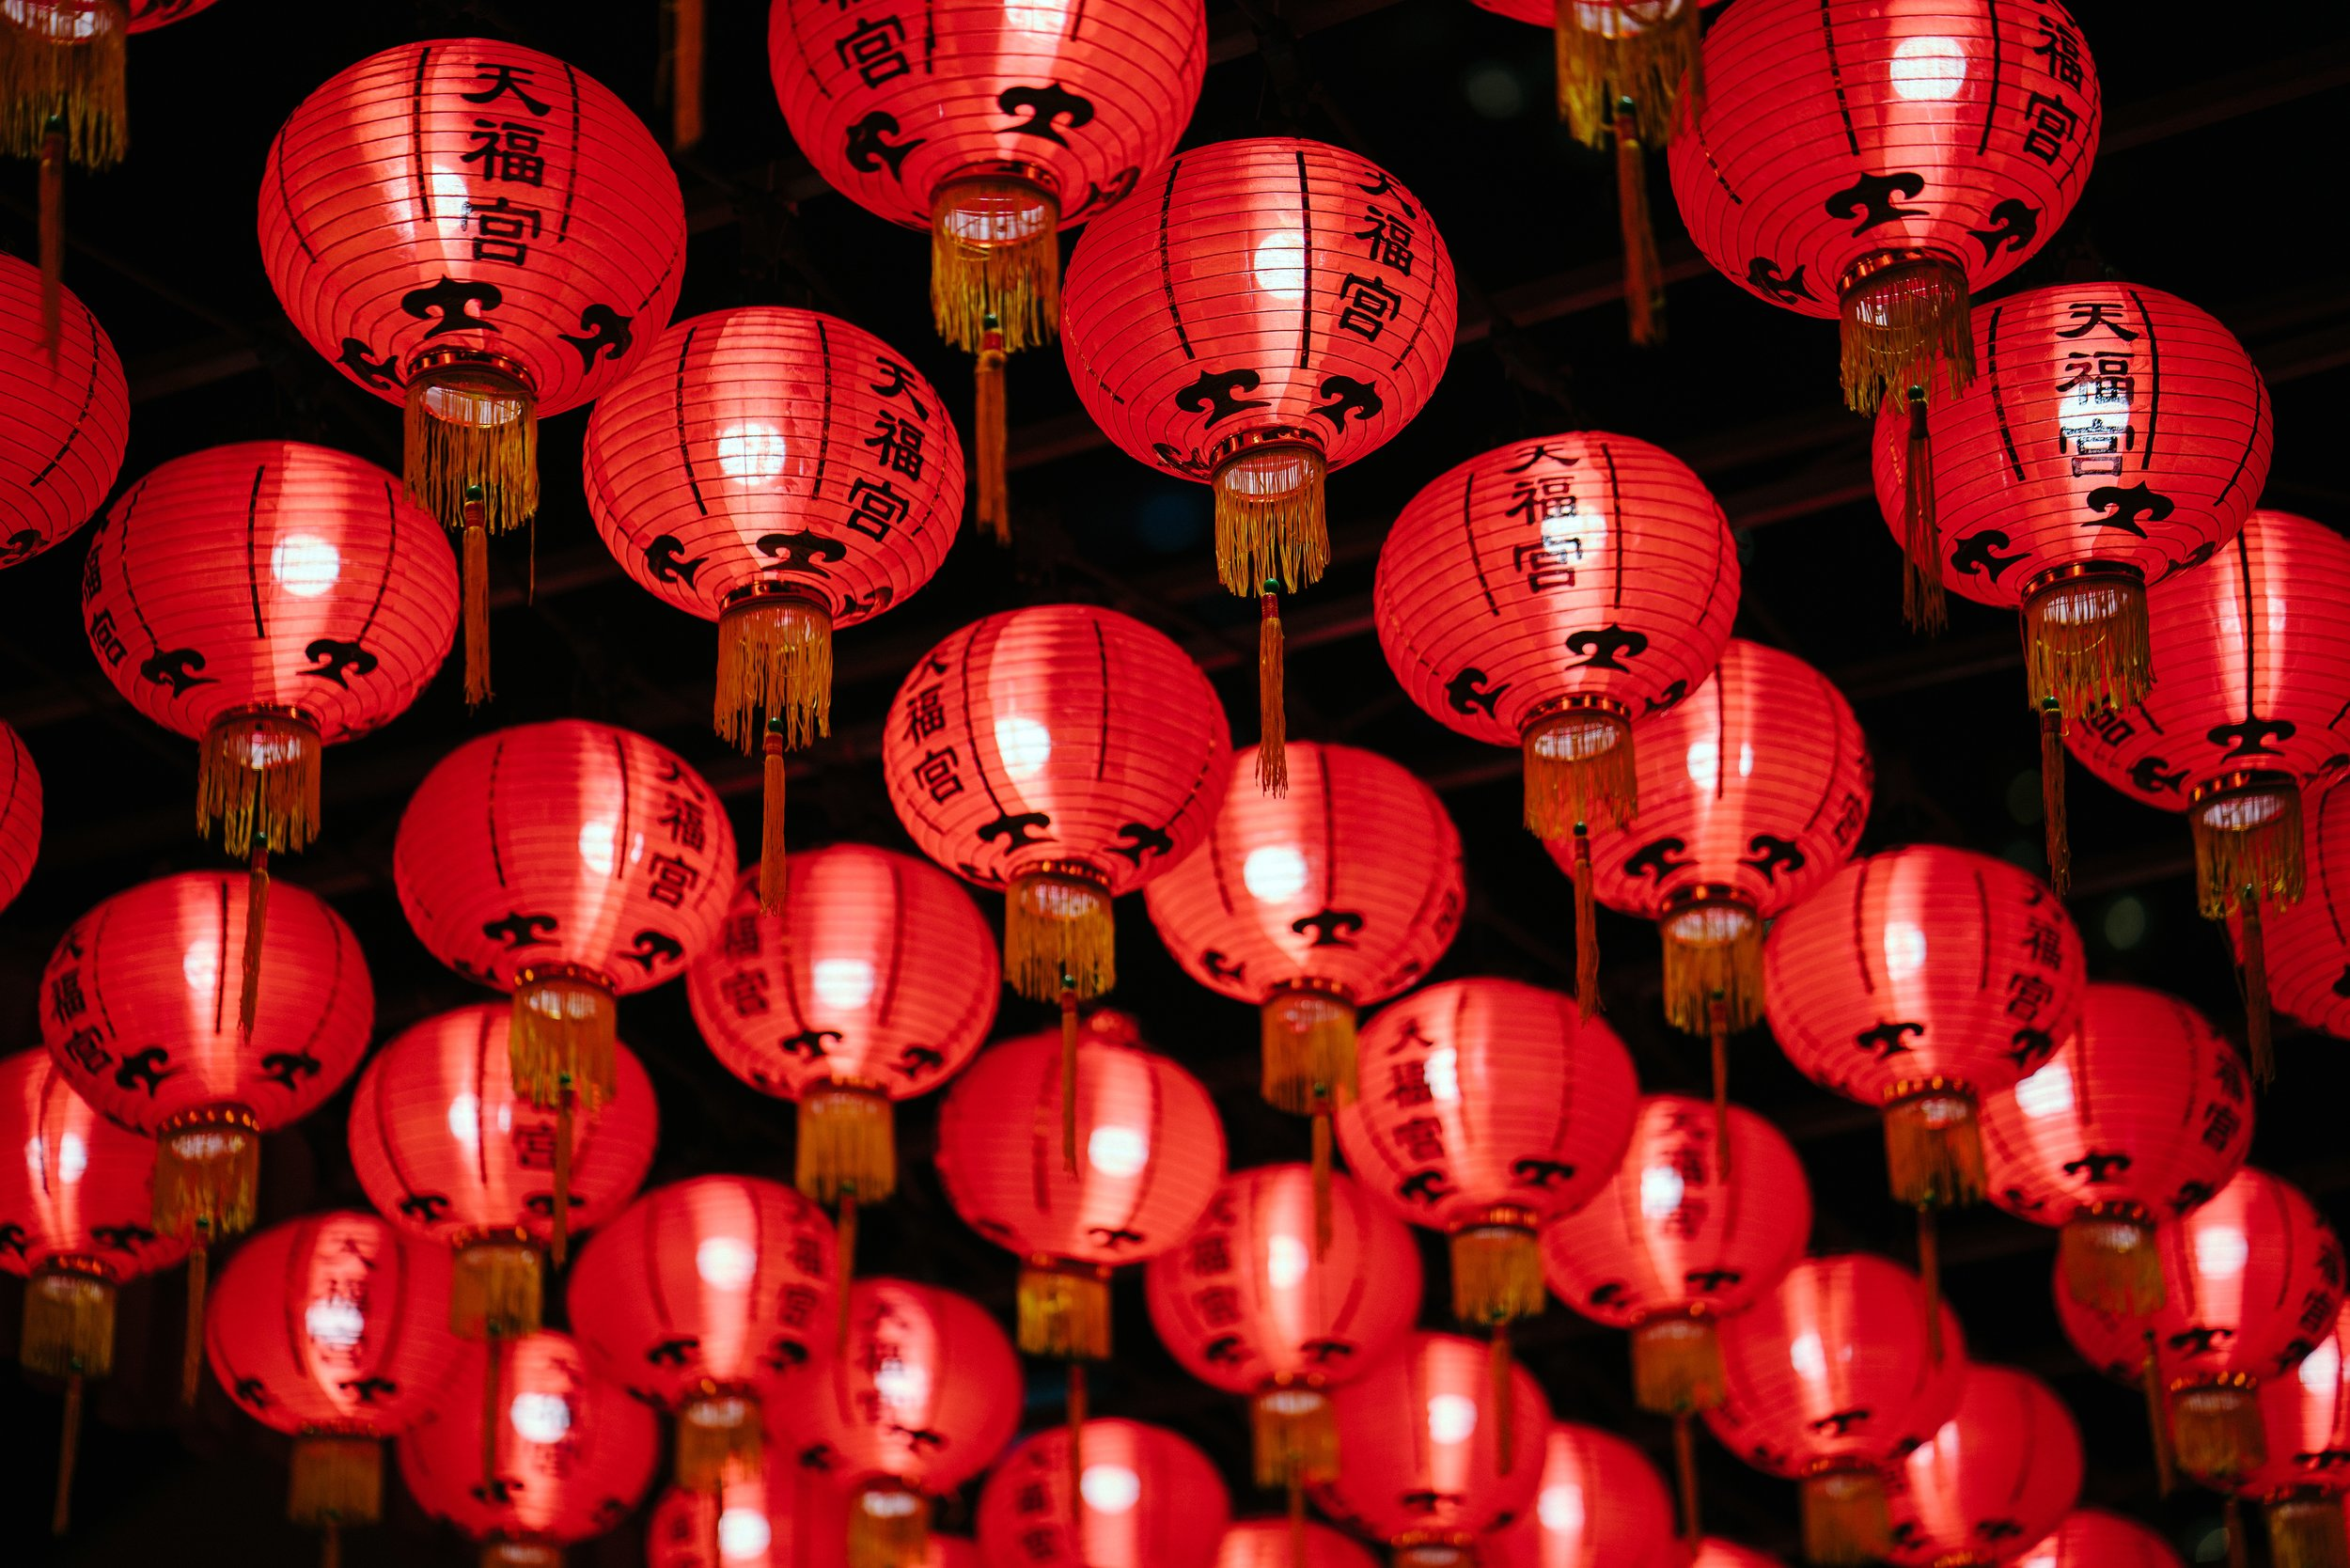 Red Lanterns light the way for a the start of the New Year!